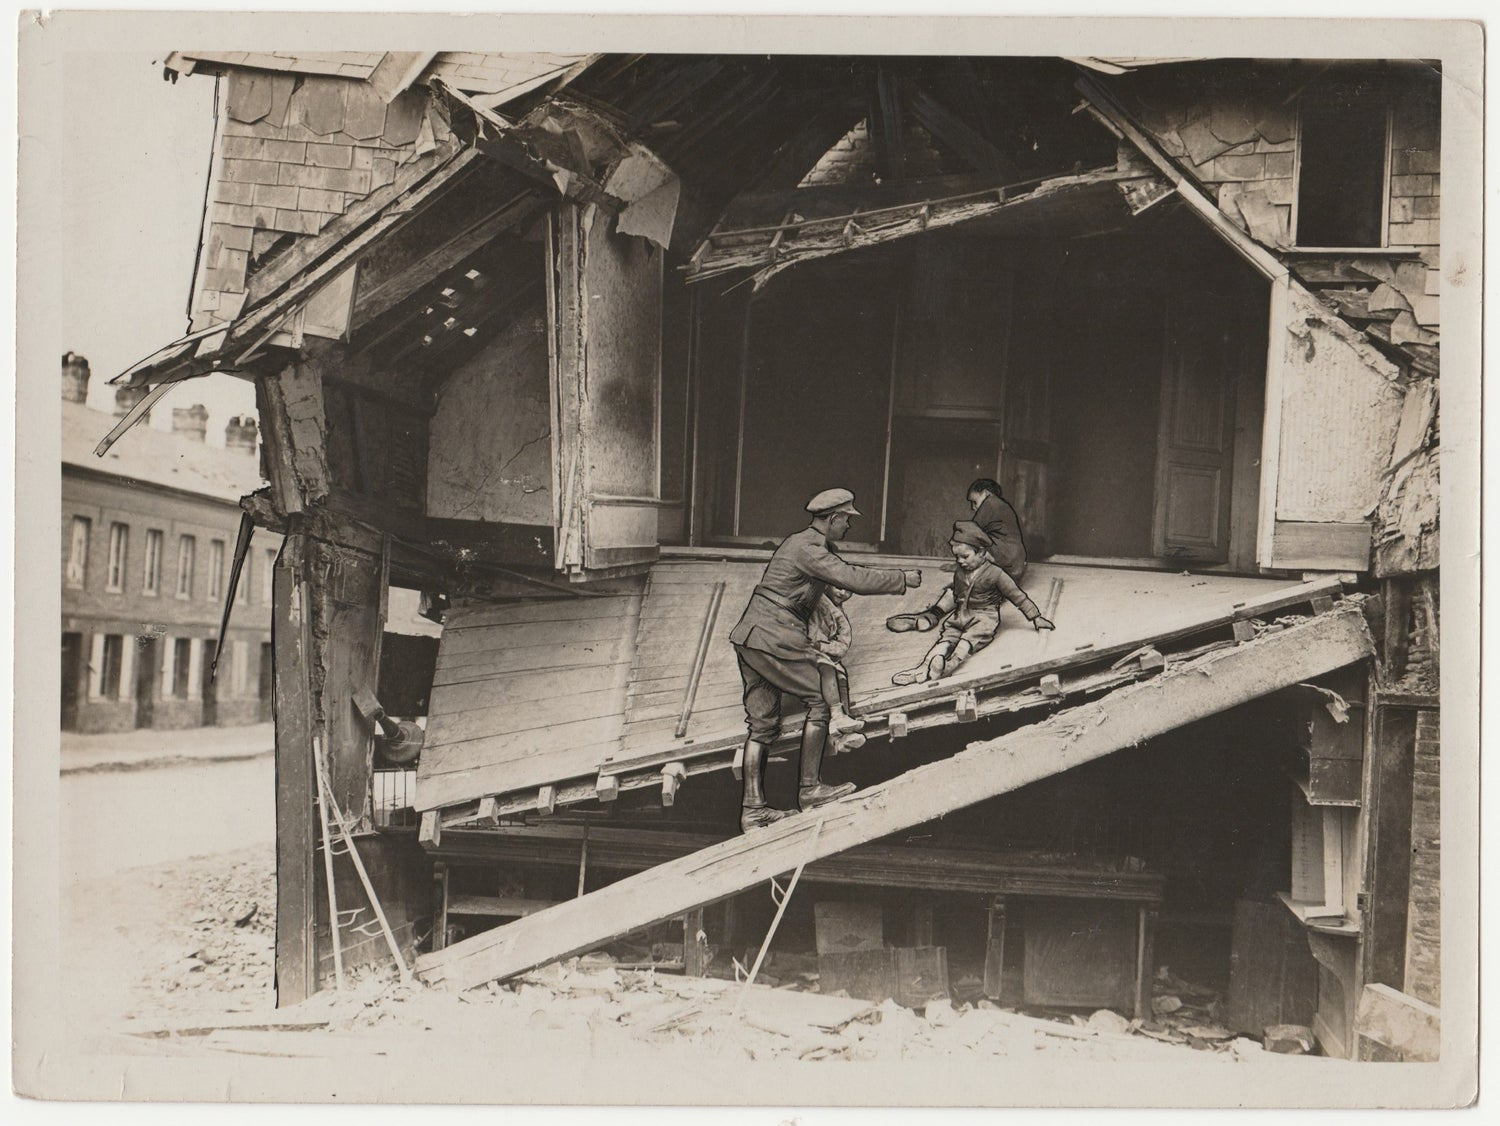 Image of Associated Illustration Agencies: A Tommy helping children from a ruined house, ca. 1916